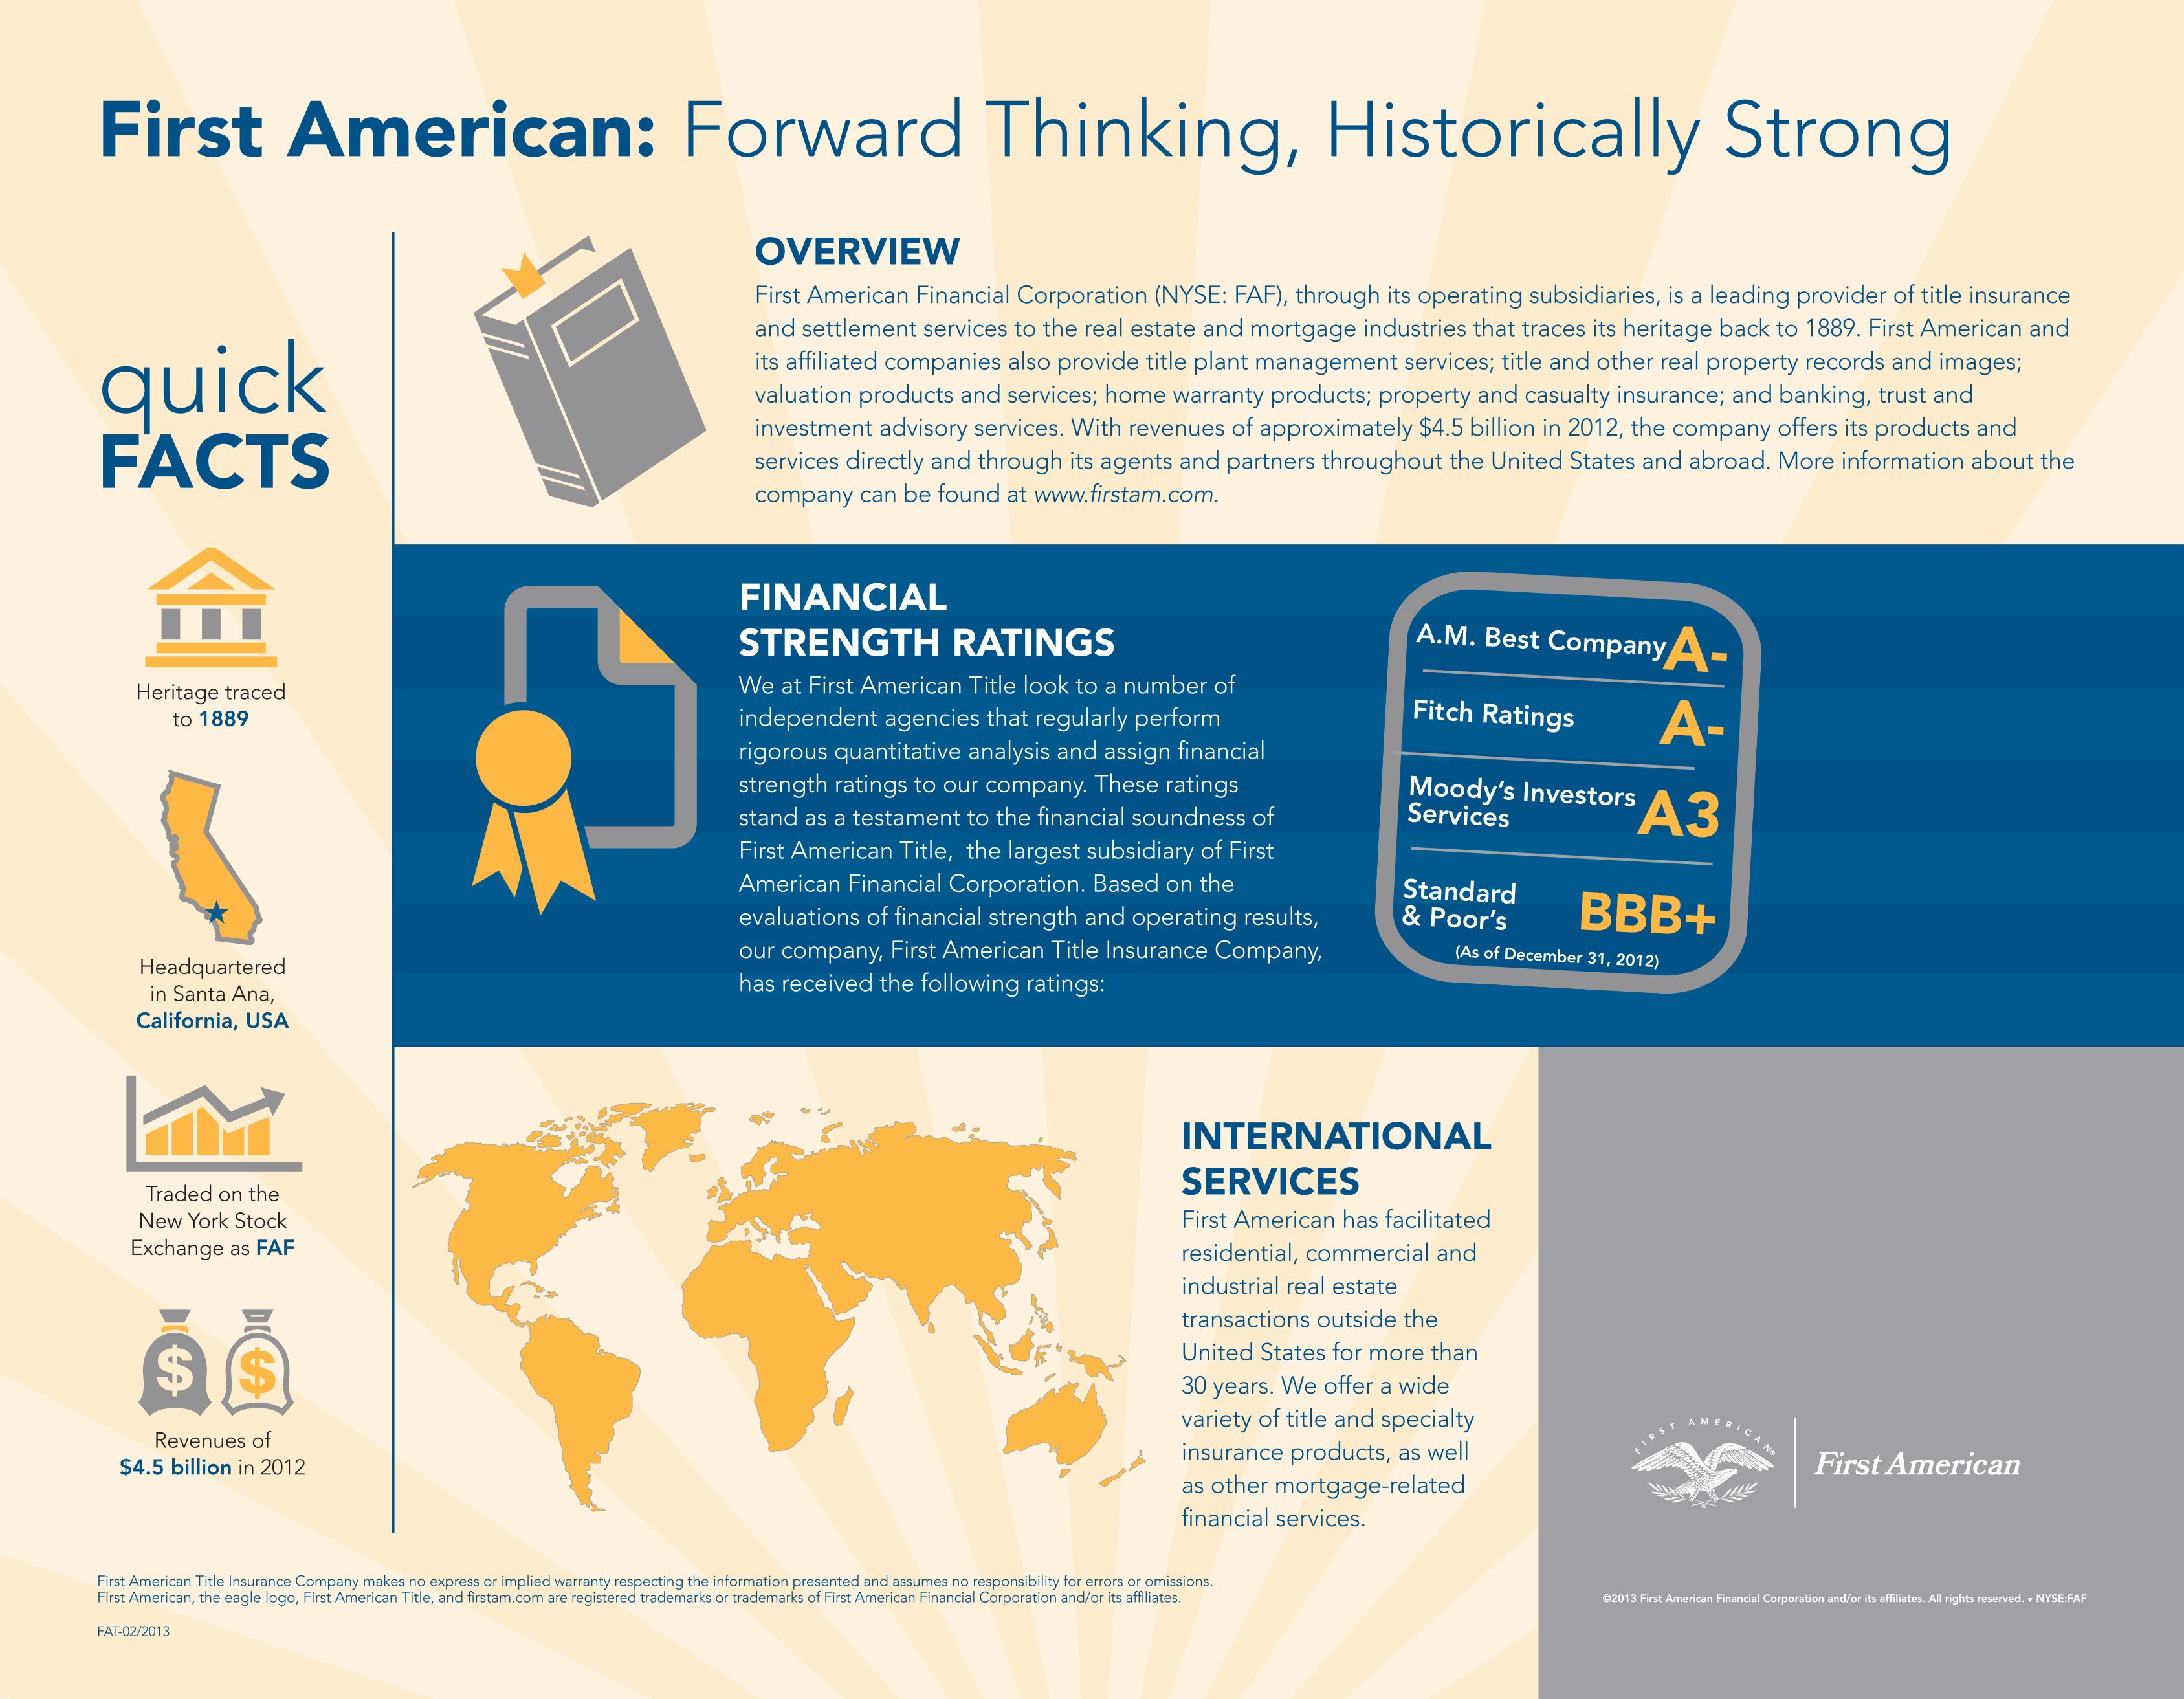 First American Forward Thinking, Historically Strong www